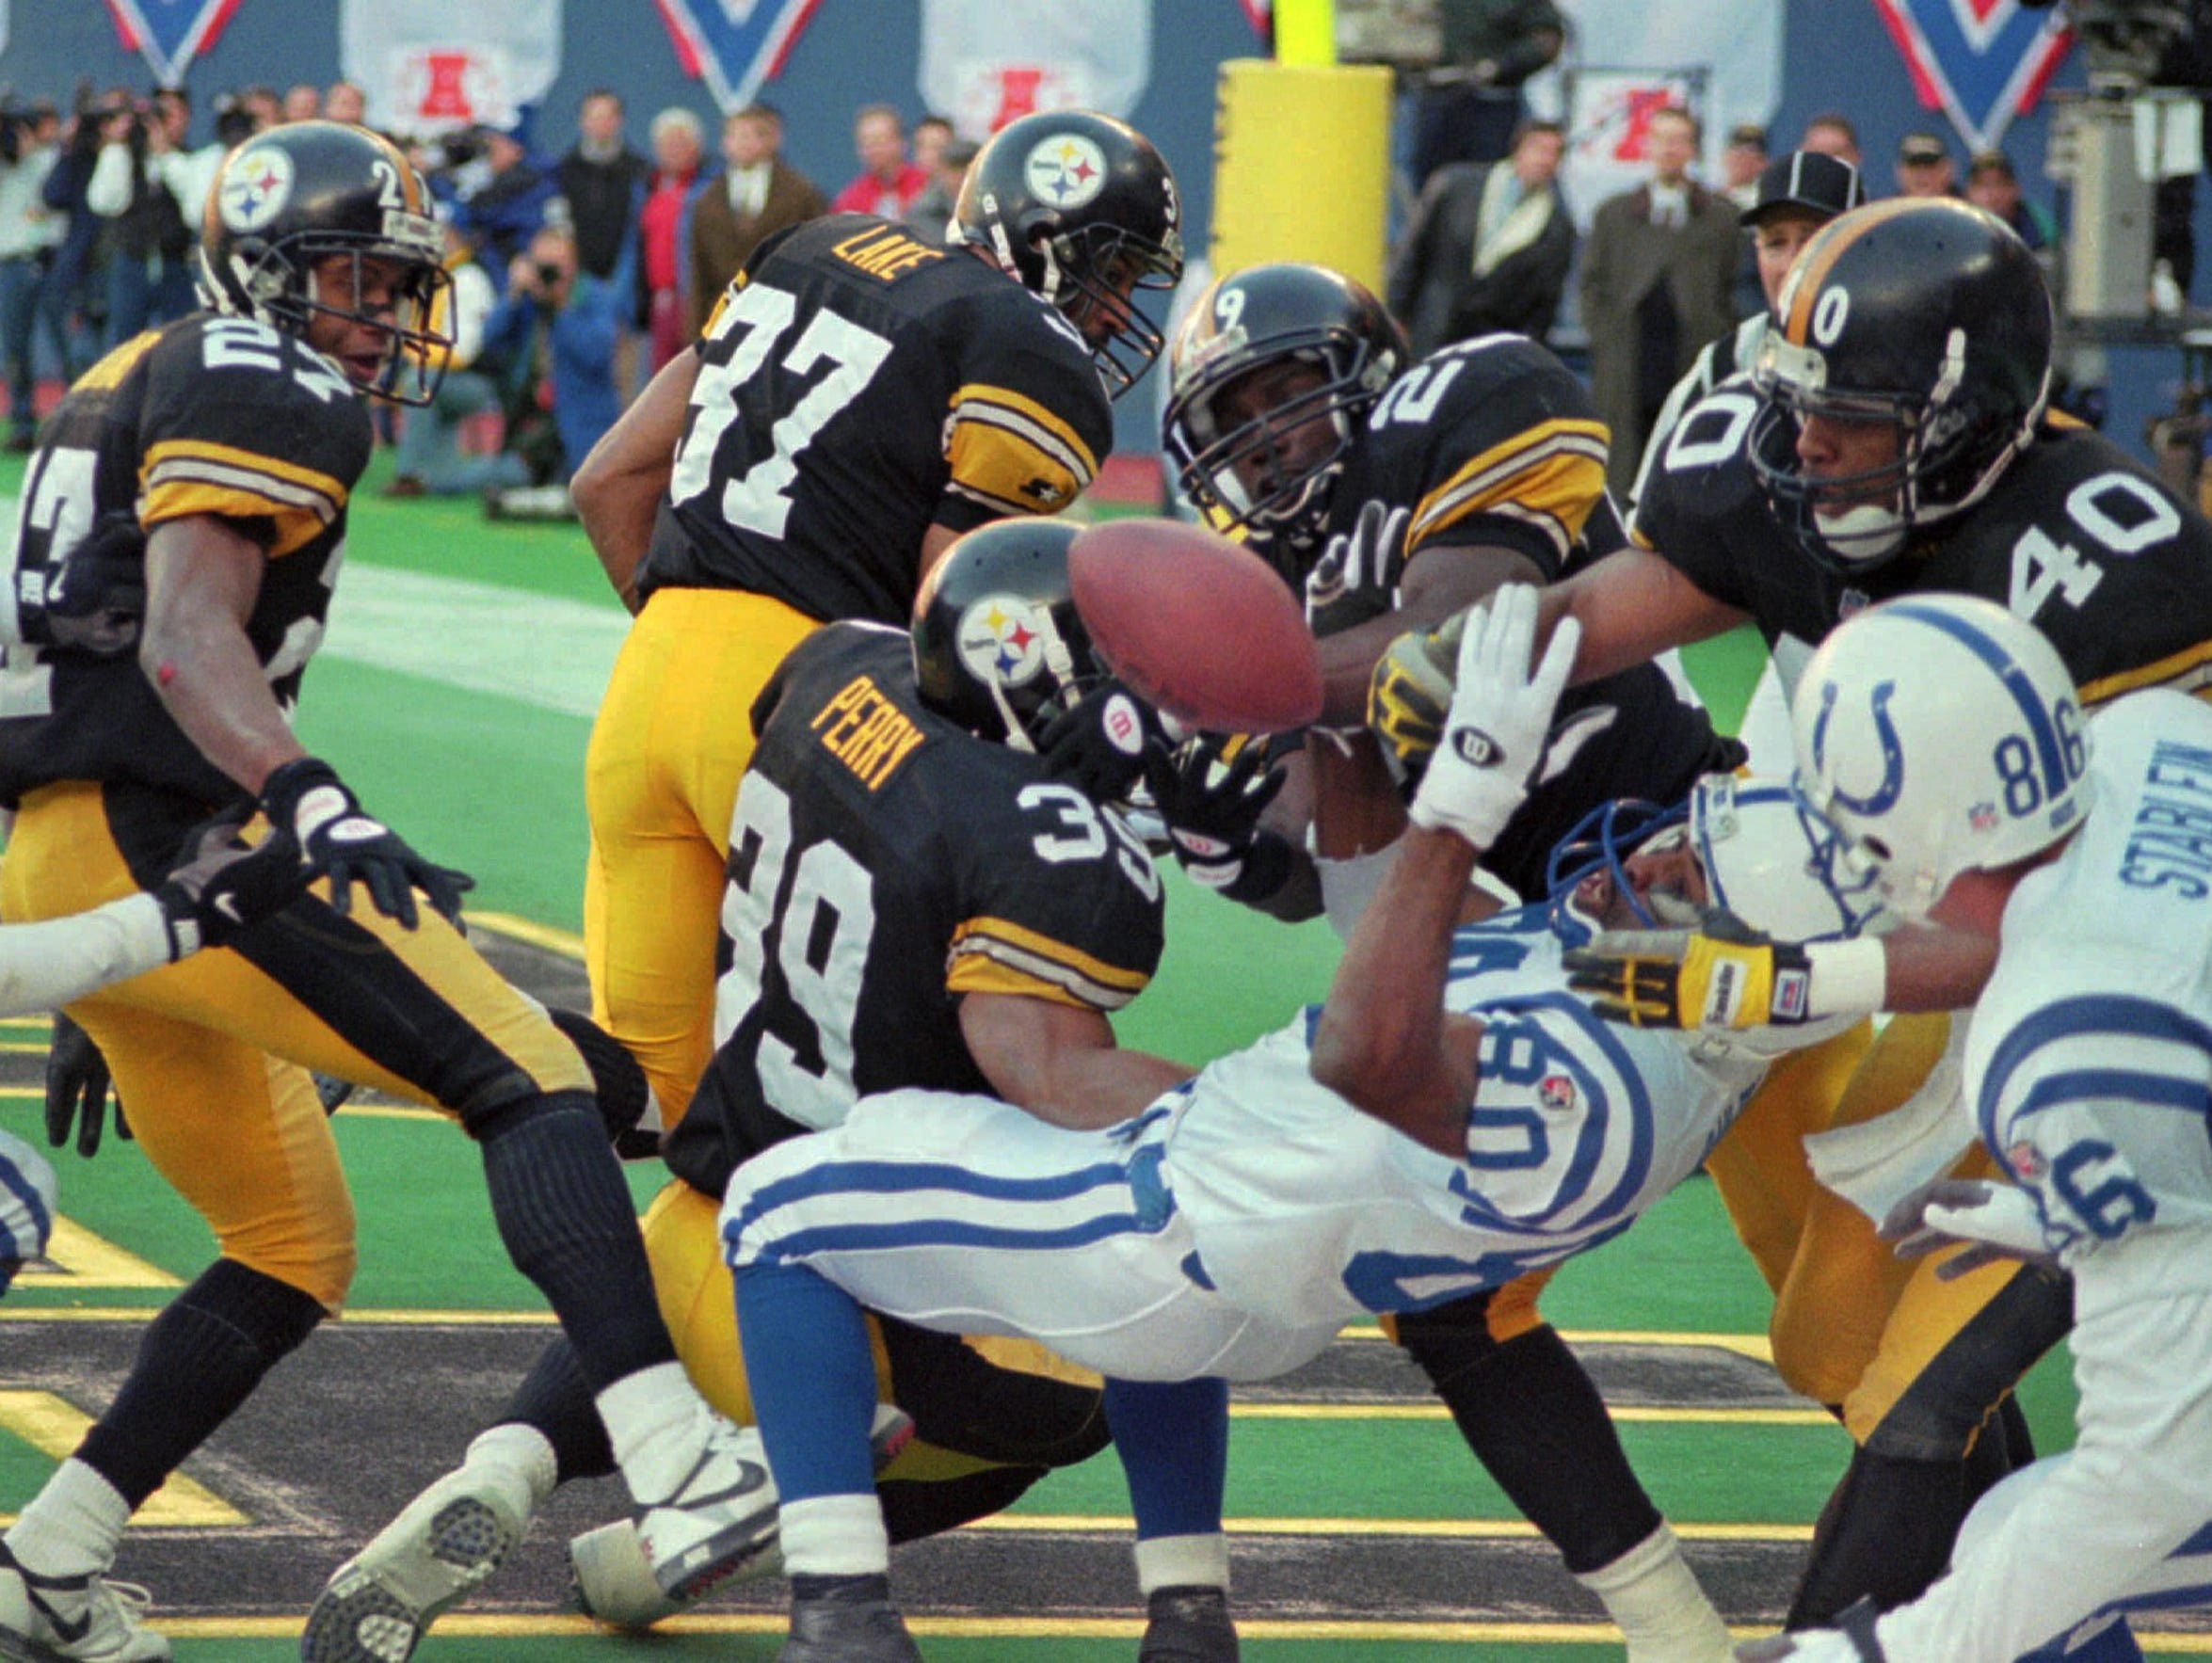 steelers, colts, AFC championship, hailmary, randy fuller